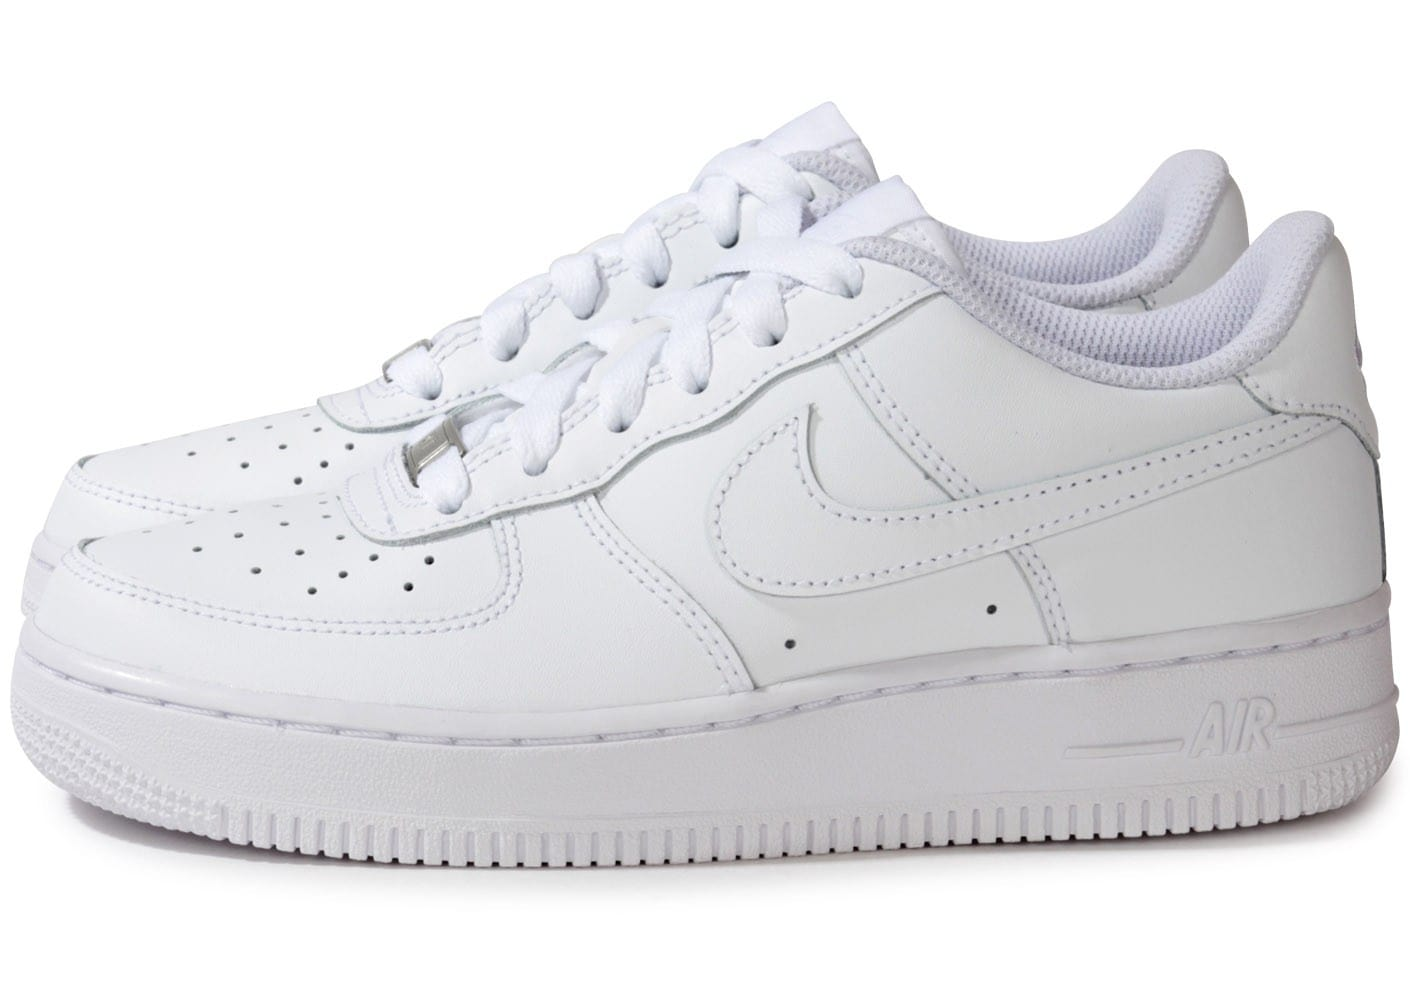 nike air force 1 rouge Transport rapide LTG0AJ0